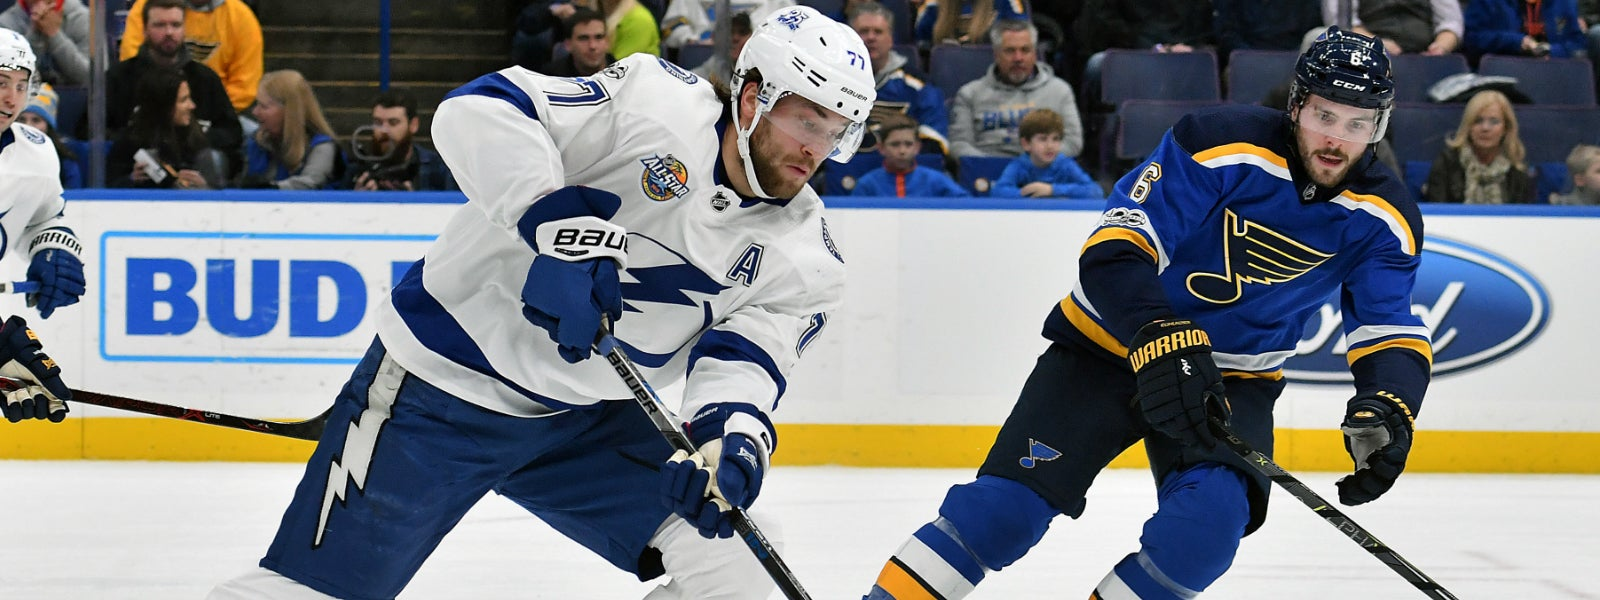 Tampa Bay Lightning vs. St. Louis Blues